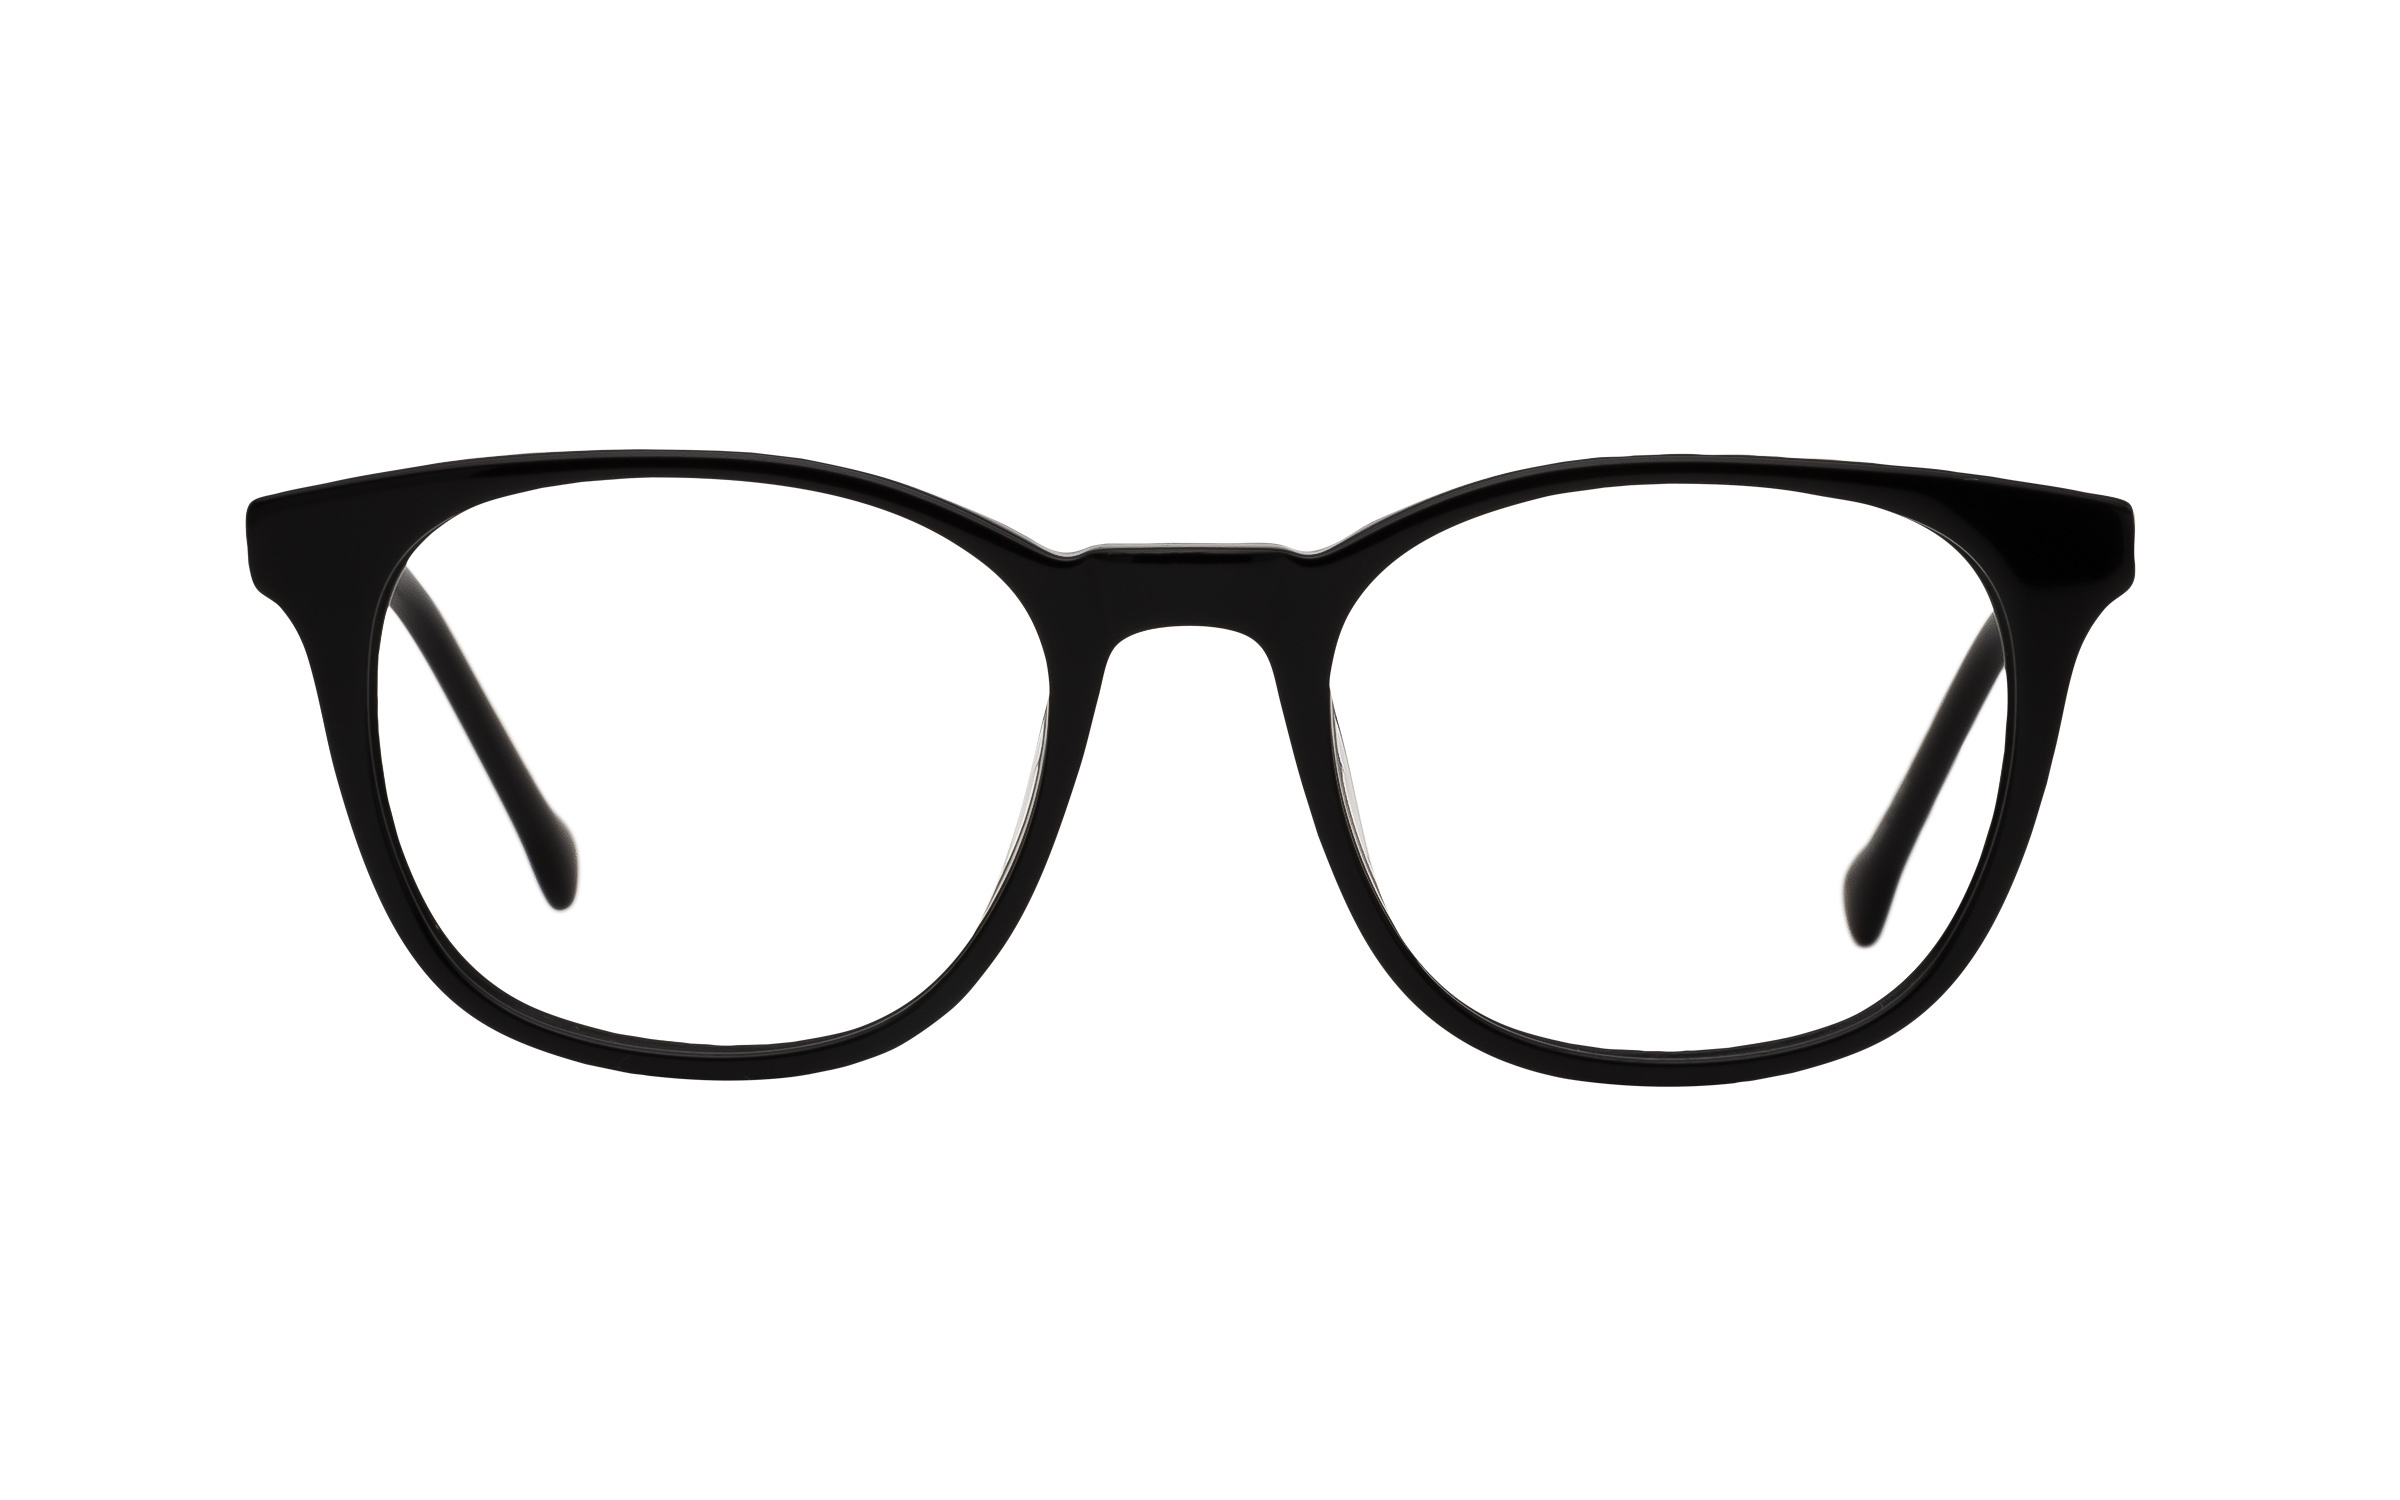 7 for All Mankind Glasses D-Frame Black Acetate Online Clearly